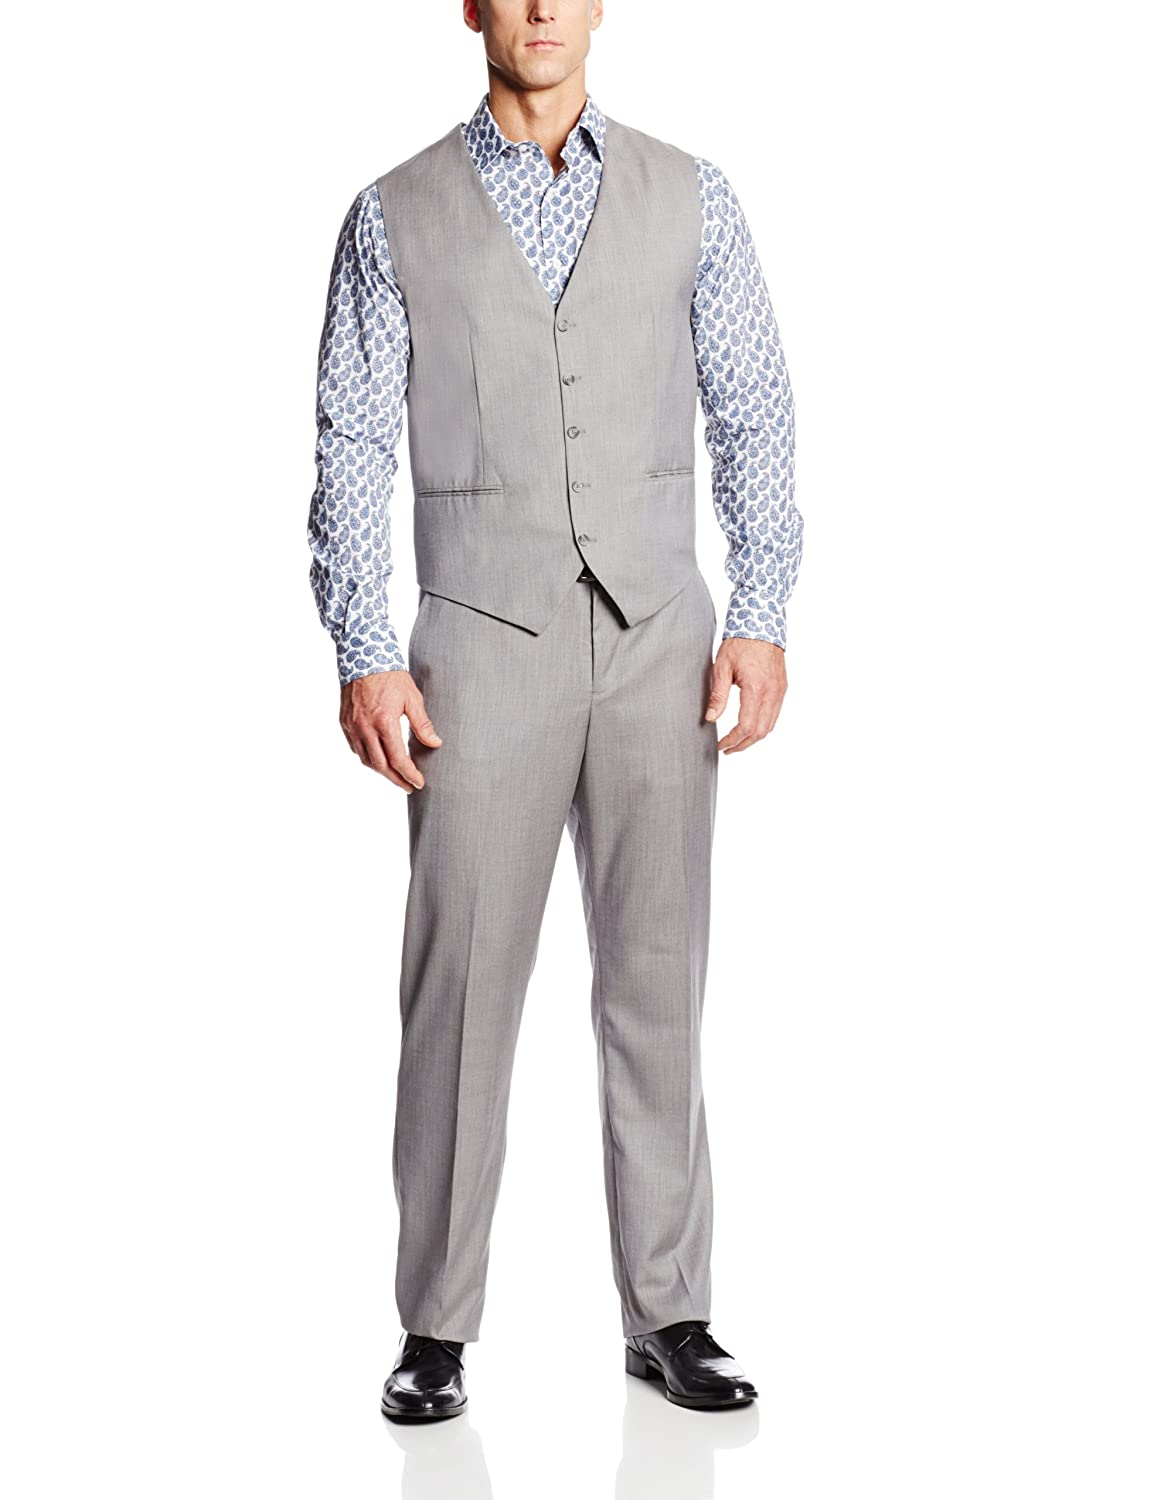 Perry Ellis Mens Linen Suit Vest Perry Ellis Men/'s Sportswear